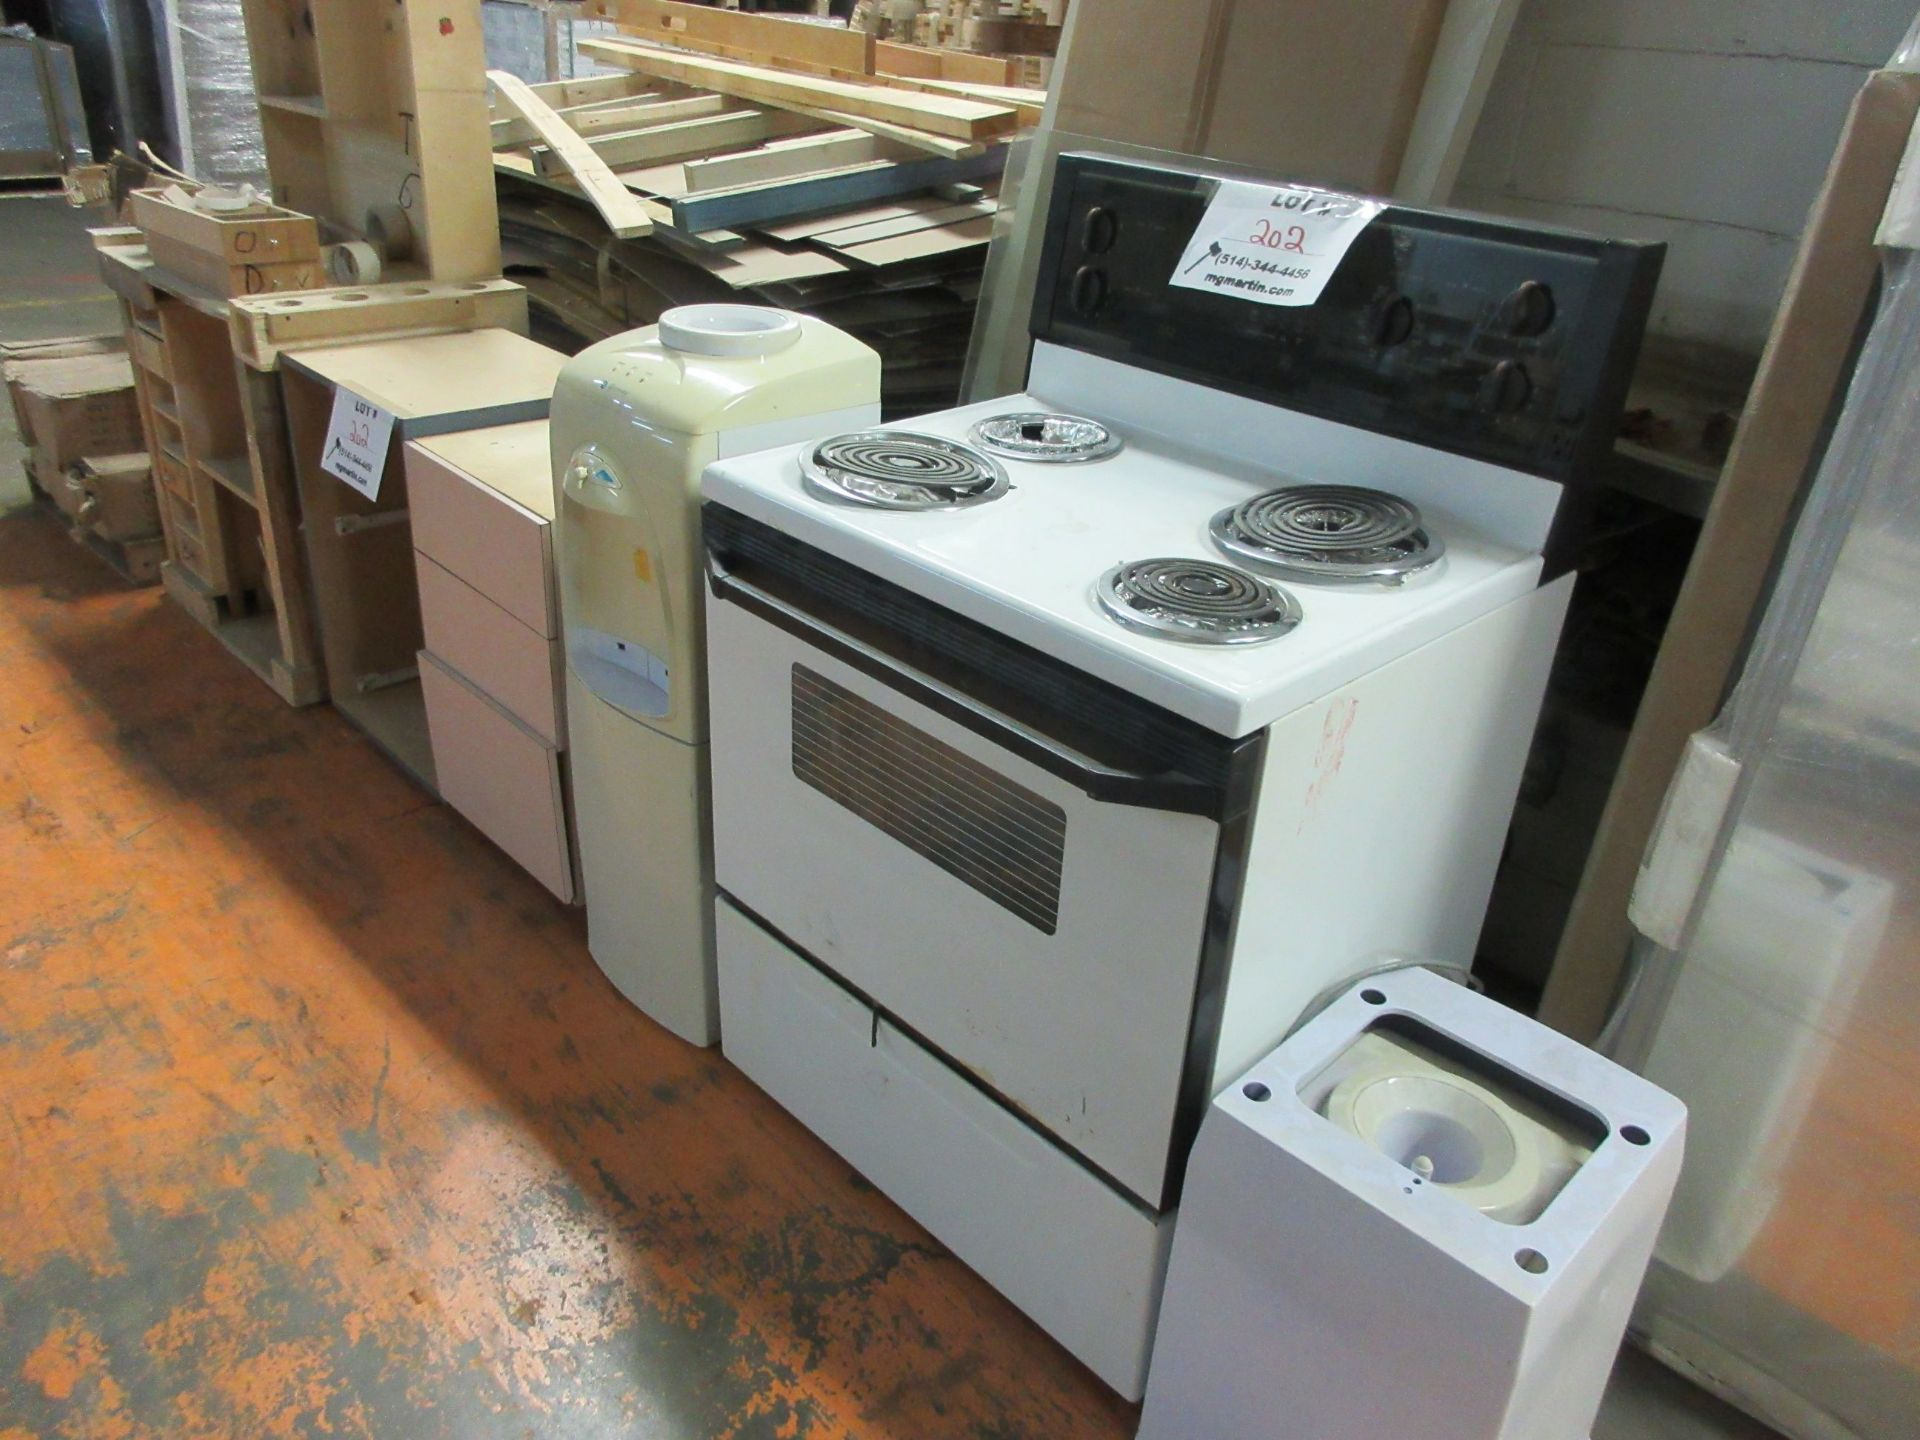 Lot 202 - LOT Including WHIRLPOOL oven, water coolers, cabinets, etc.